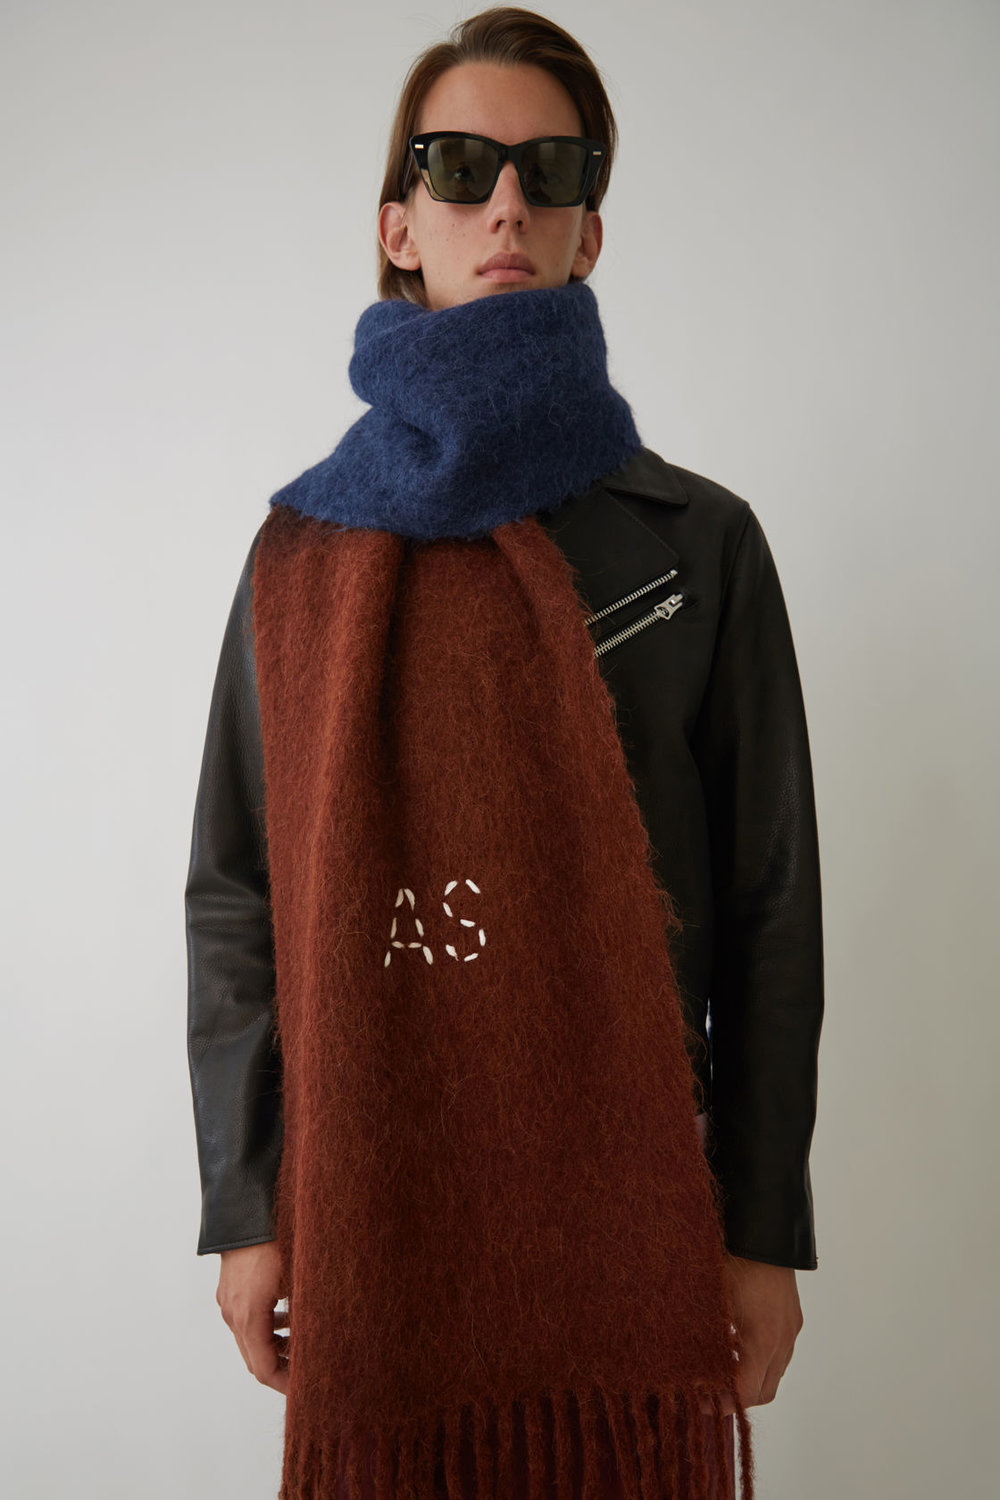 Two-toned Scarf $280